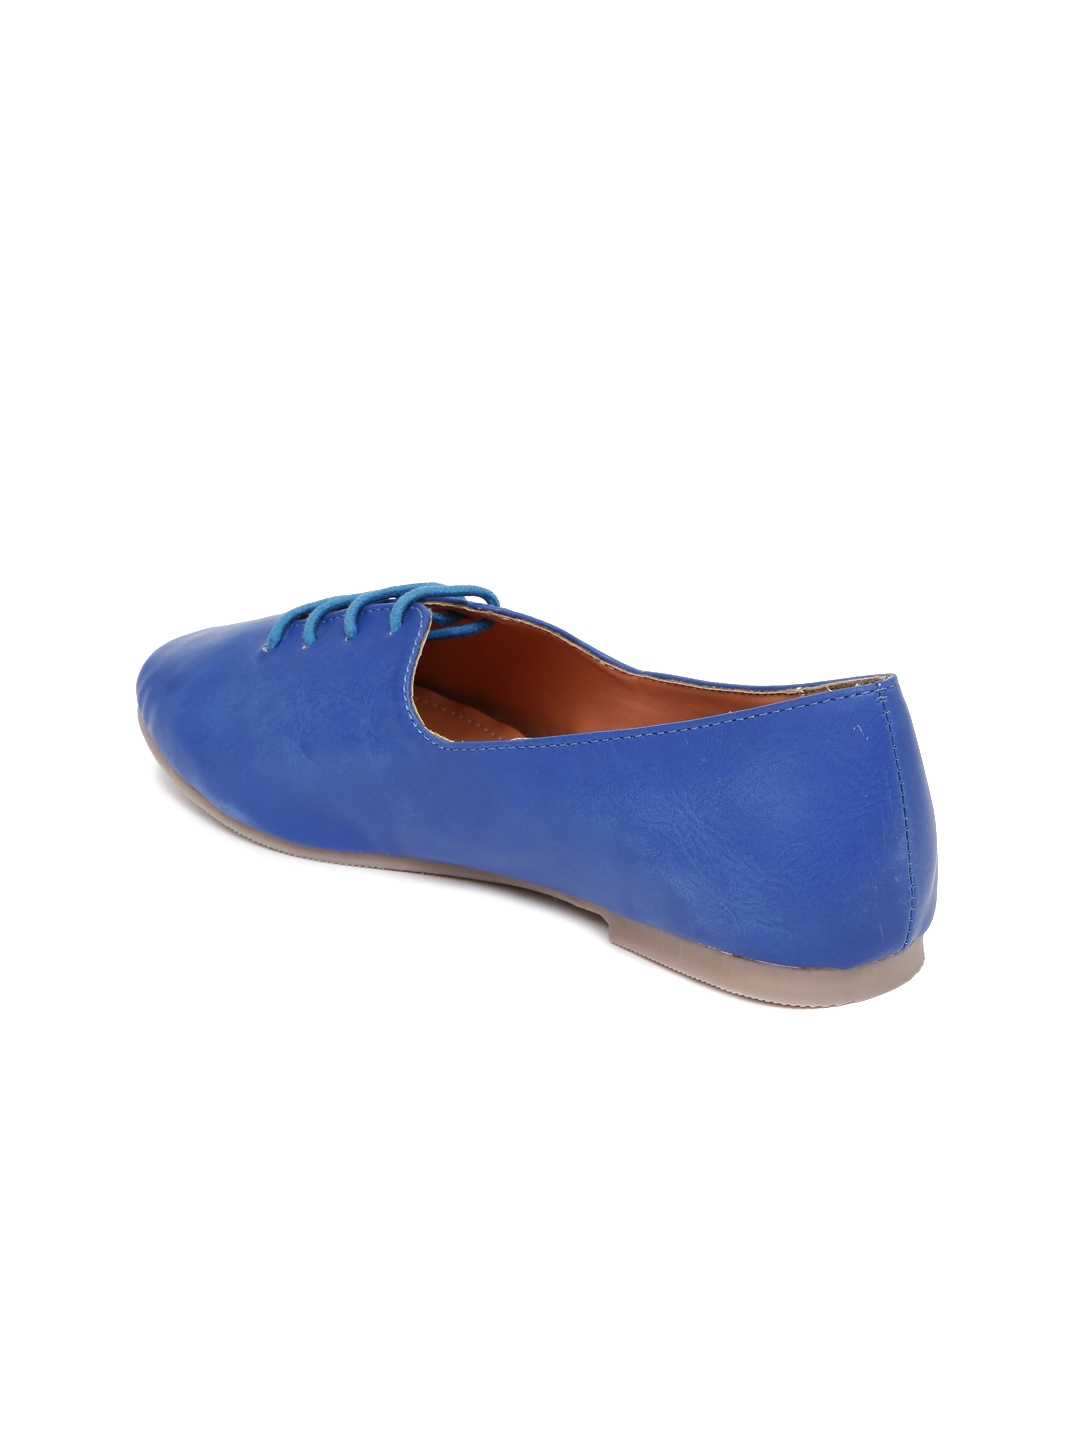 Buy Lavie Women Blue Casual Shoes - Casual Shoes for Women 1839418 ... 276956ebf6d